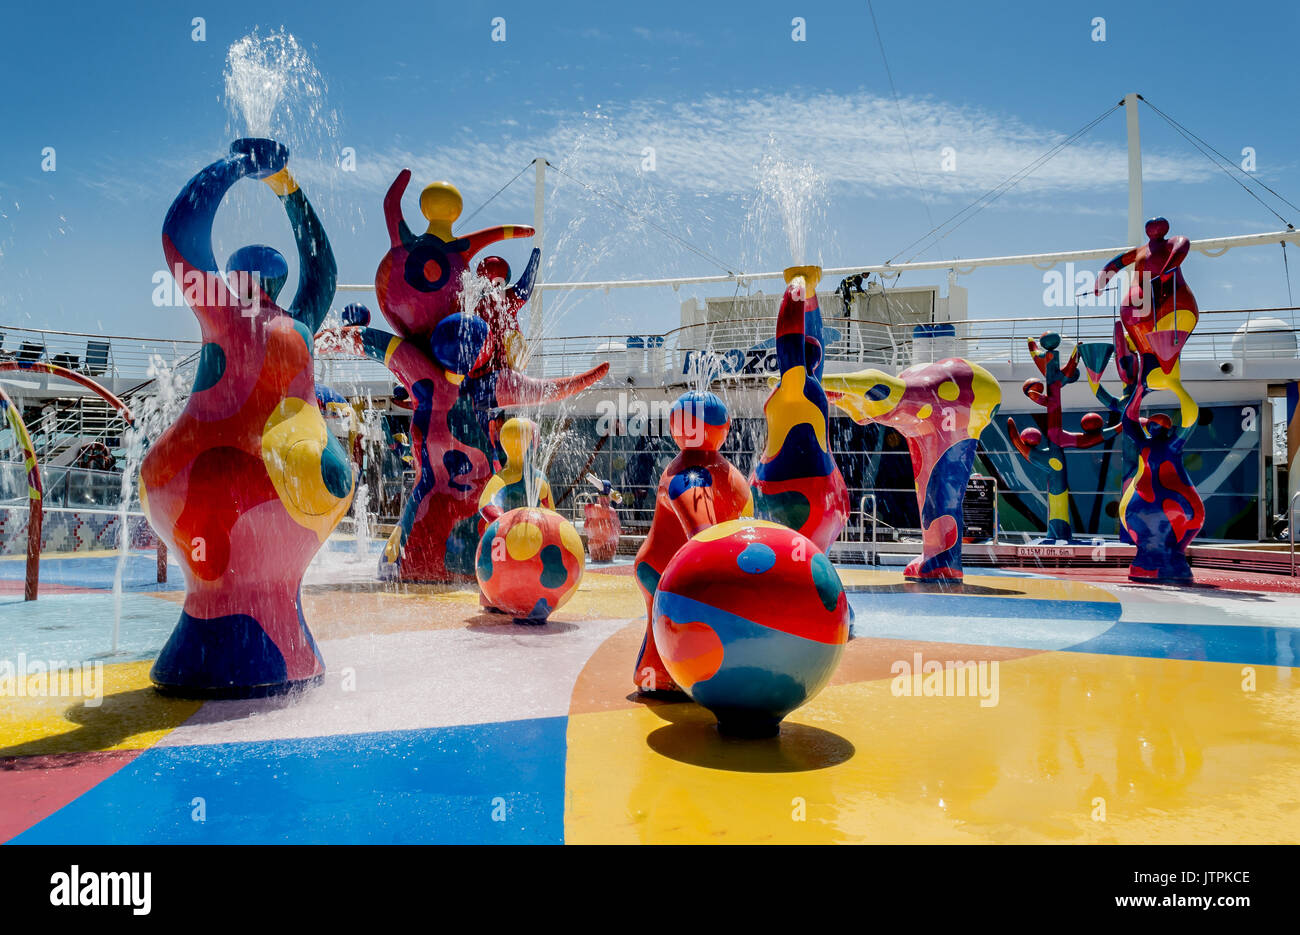 H2O Zone, Freedom of the Seas, Royal Caribbean International - Barcelona, Spain - 07 May, 2017: Colorful fountains of a waterpark for kids on a cruise - Stock Image